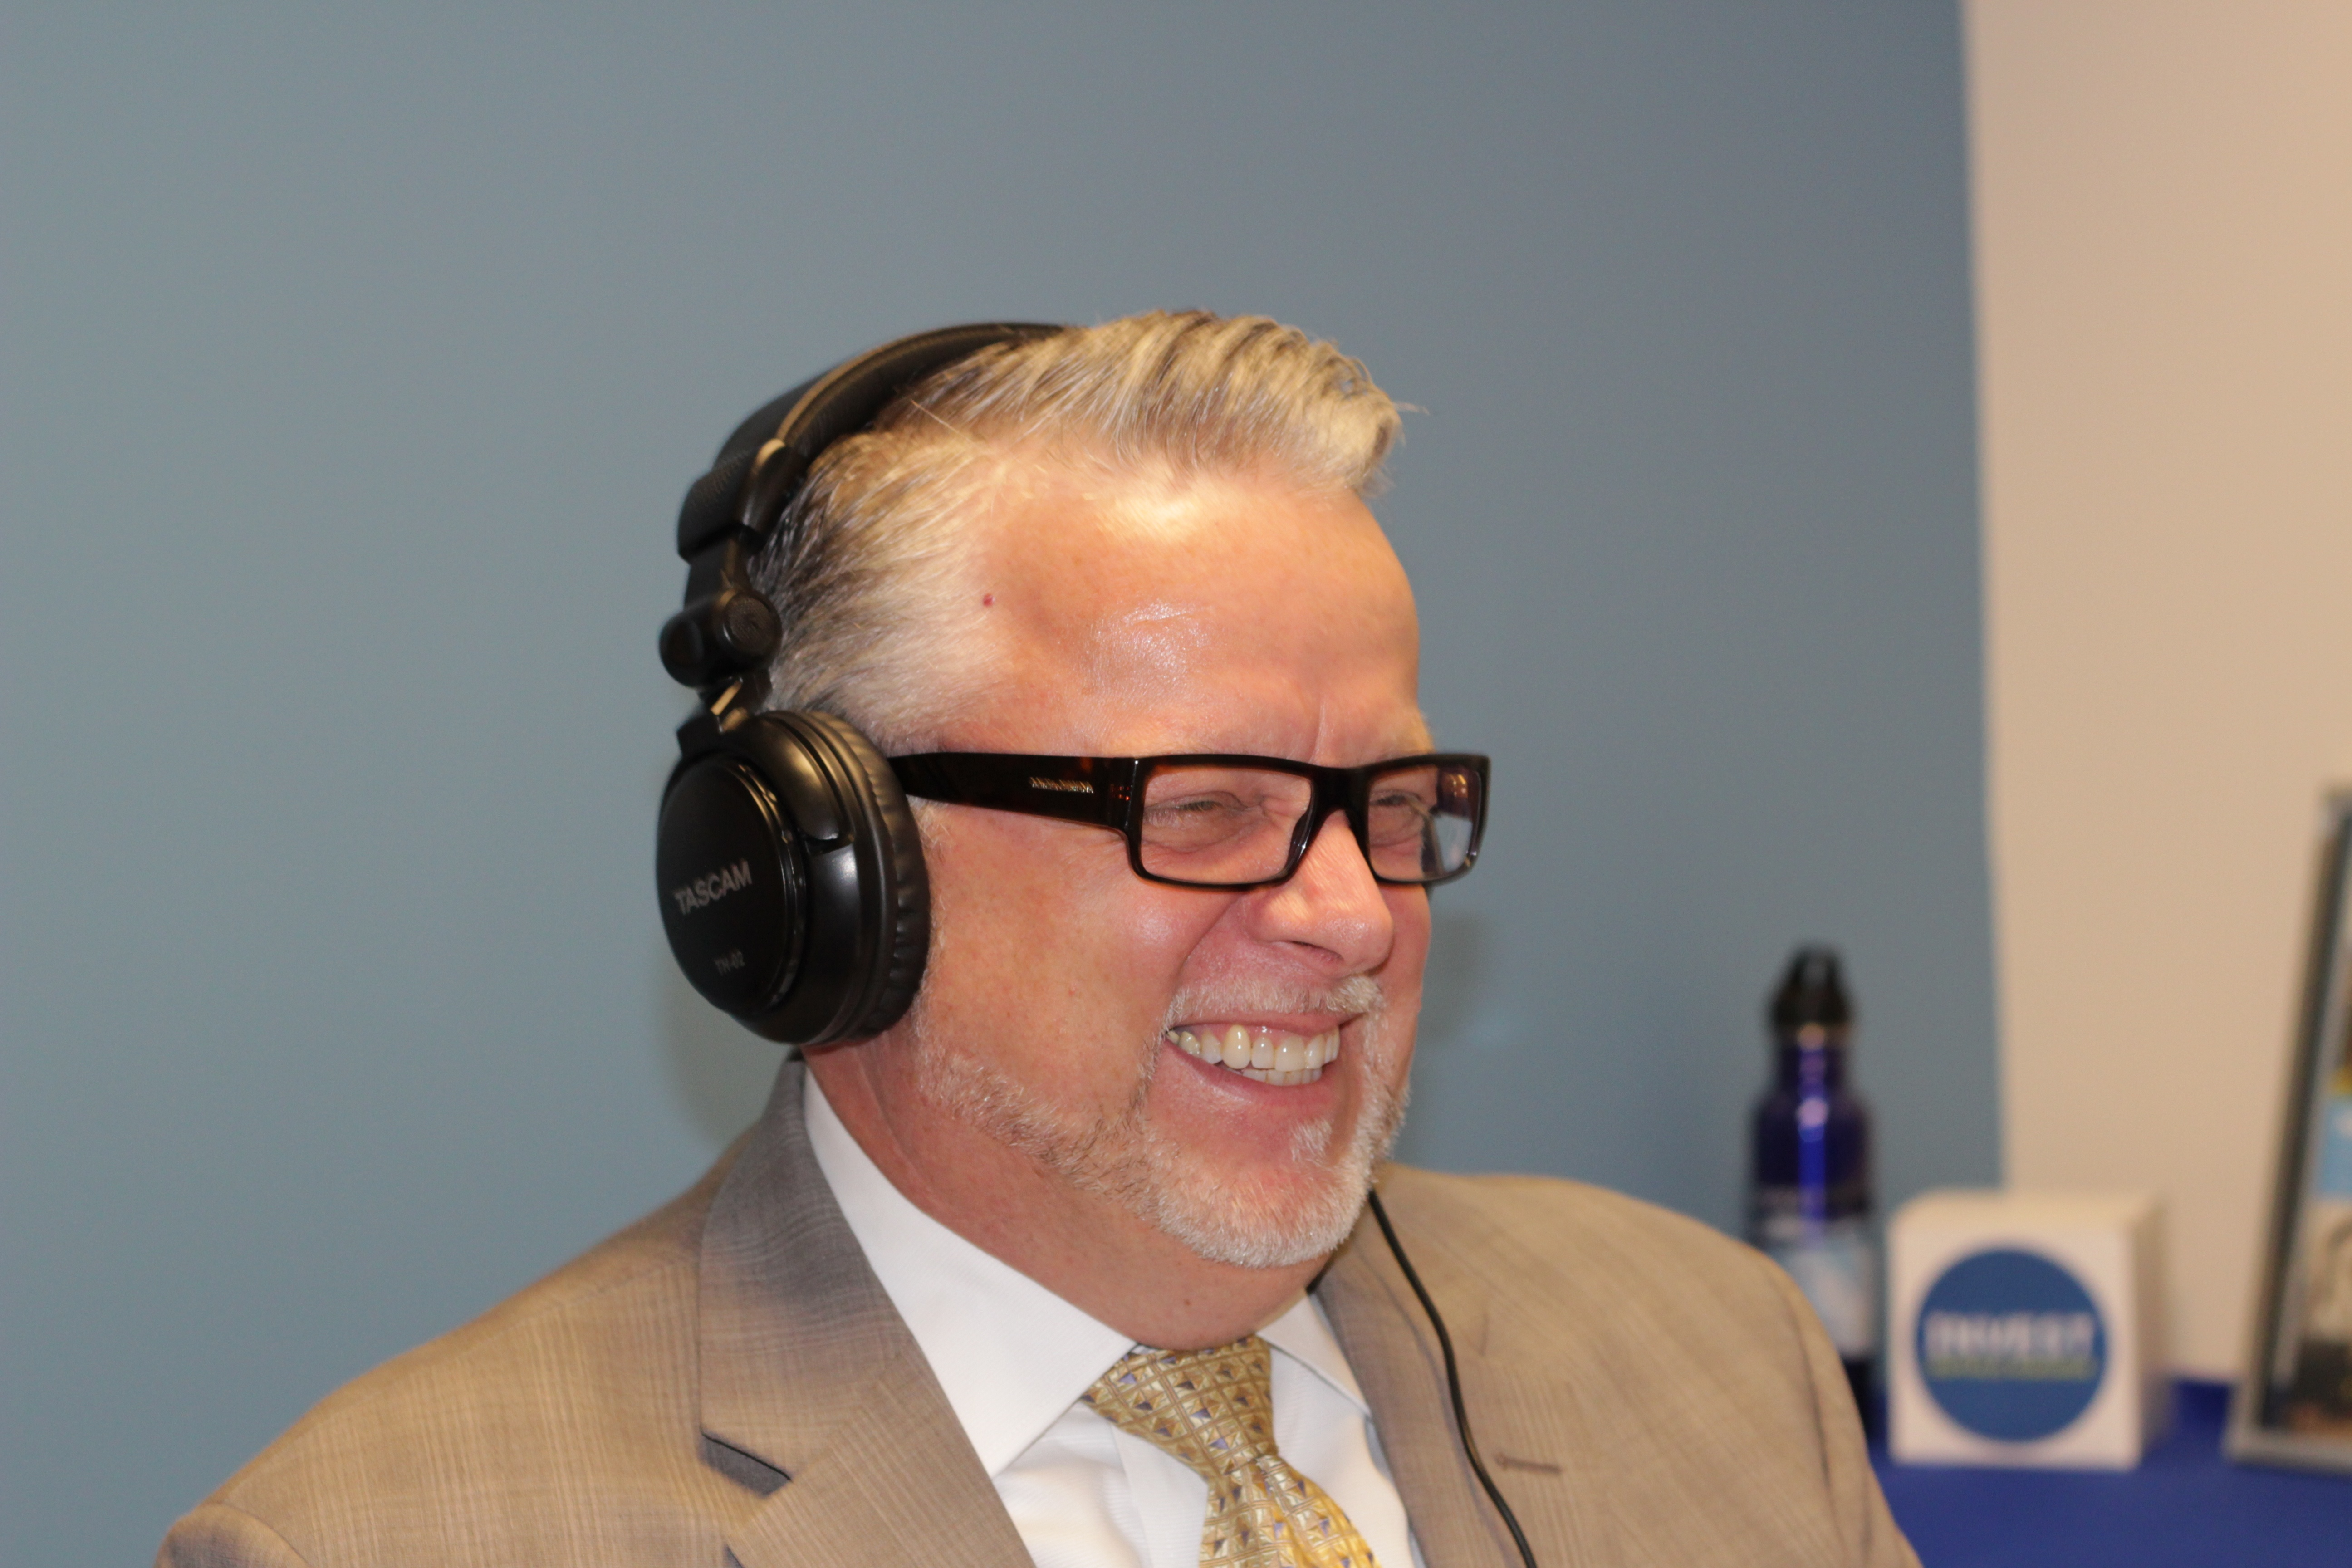 Keith Hayes having a laugh in the Bell Ringer studio